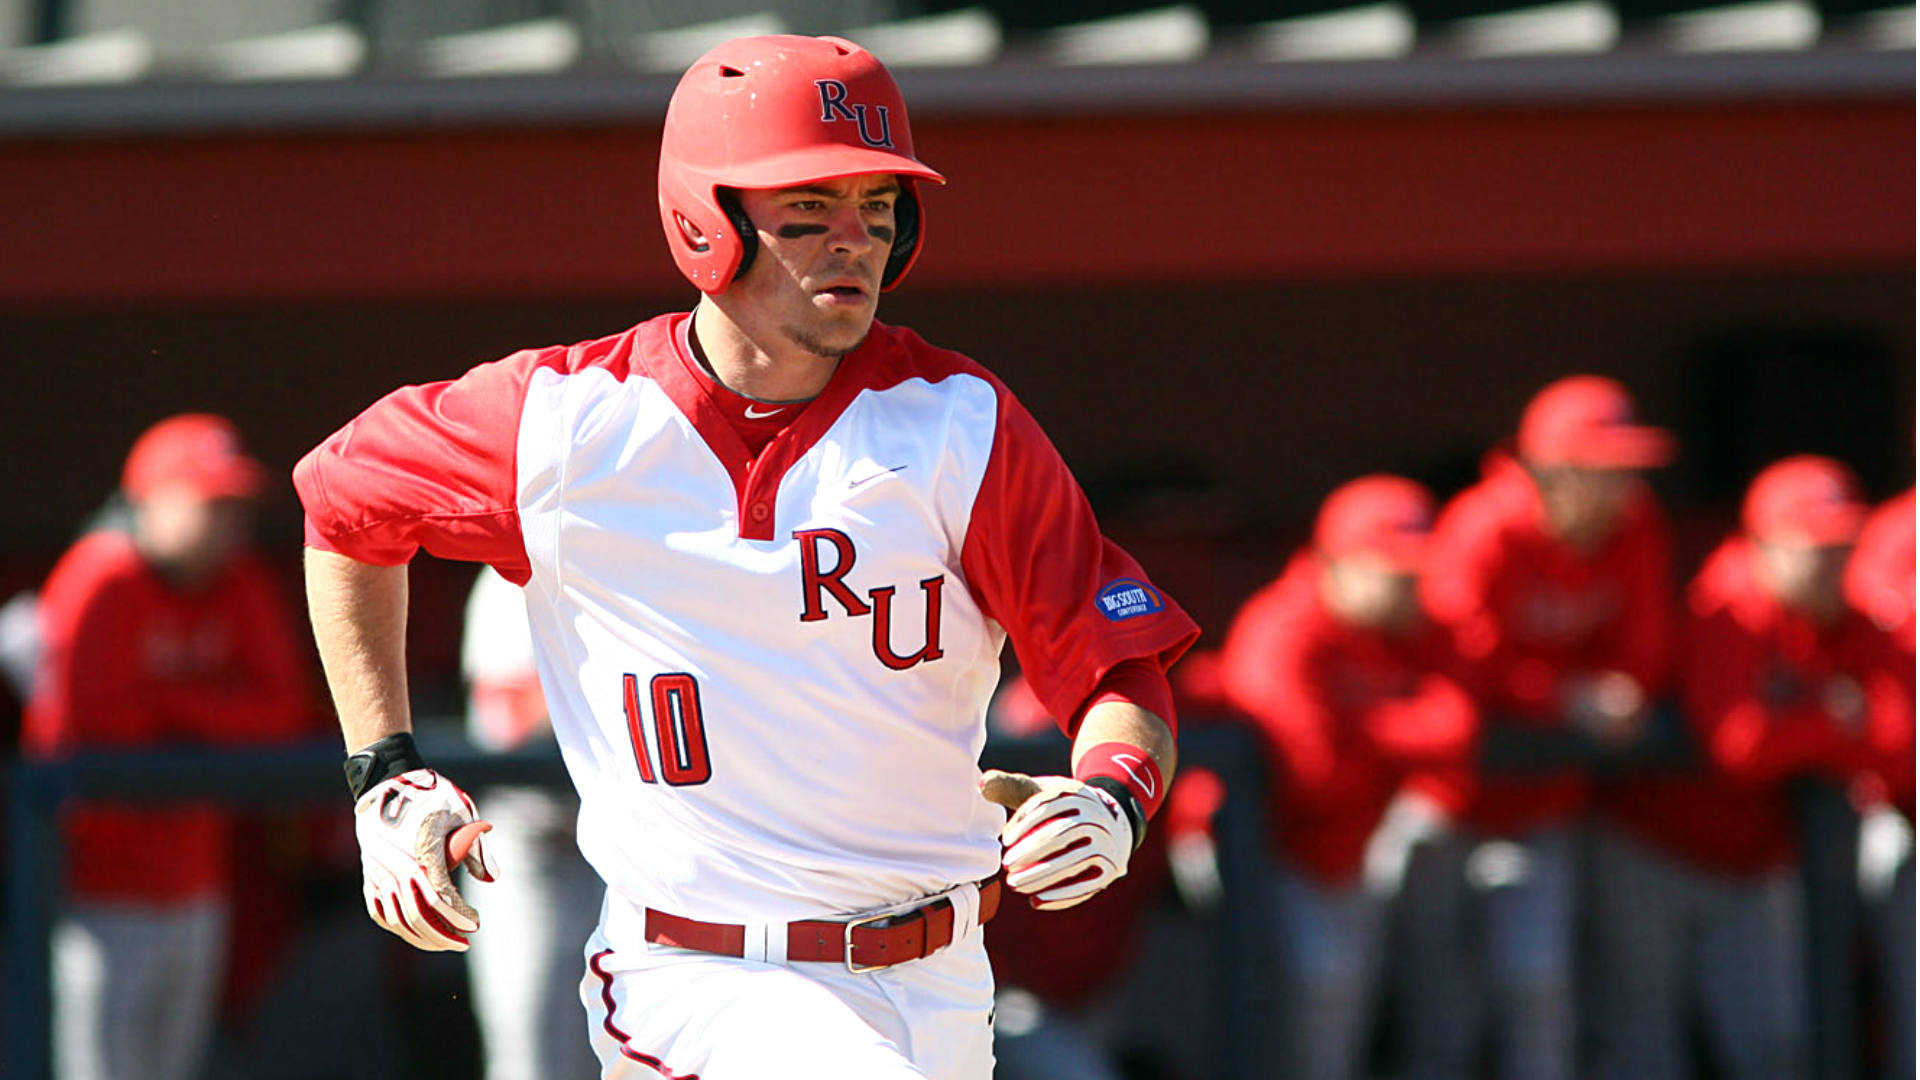 Radford, Bradley among mid-majors wreaking havoc in college baseball